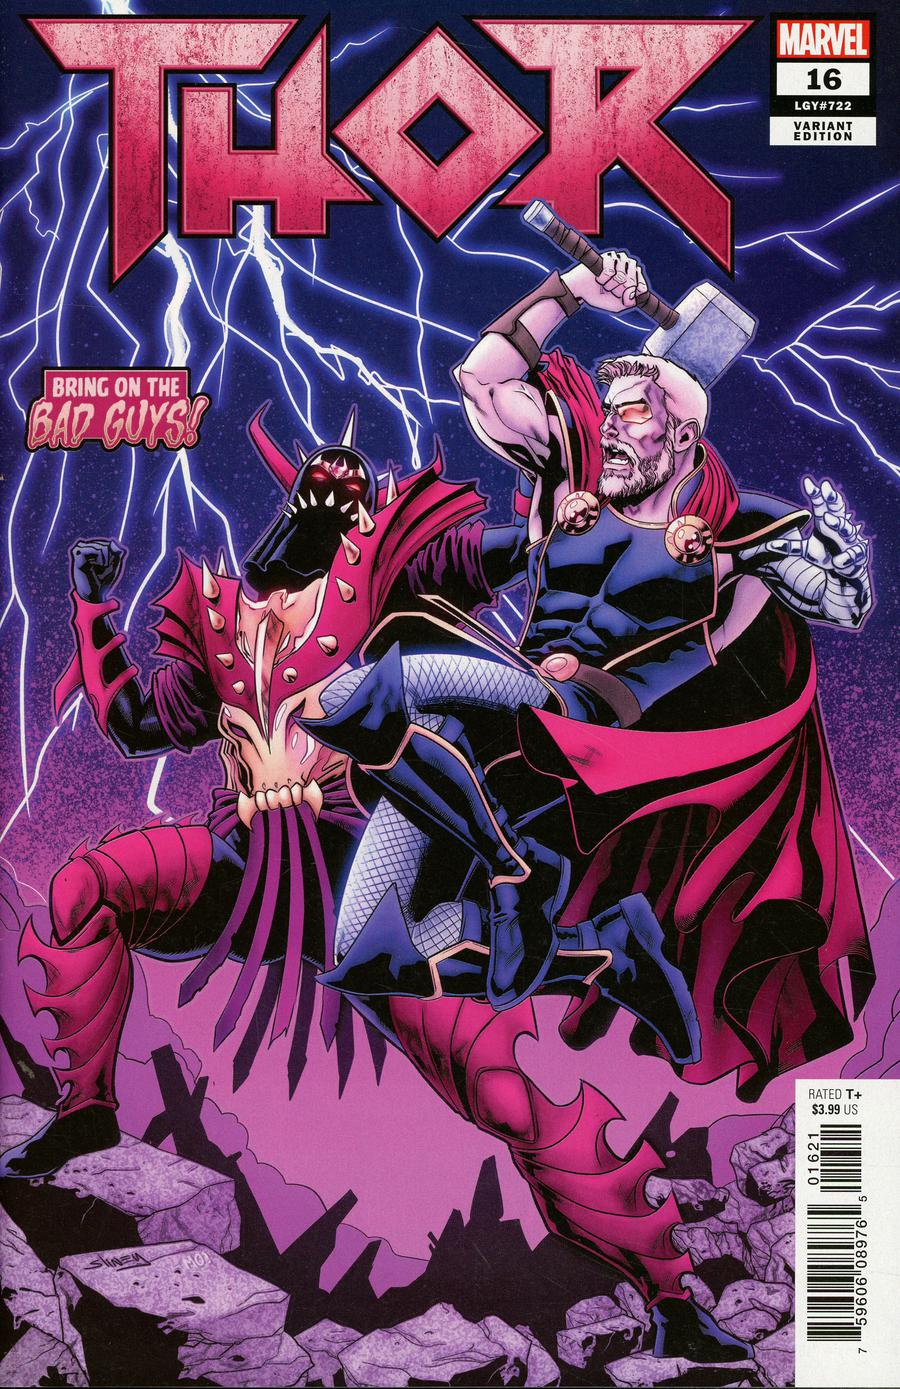 Thor Vol 5 #16 Cover B Variant Will Sliney Bring On The Bad Guys Cover